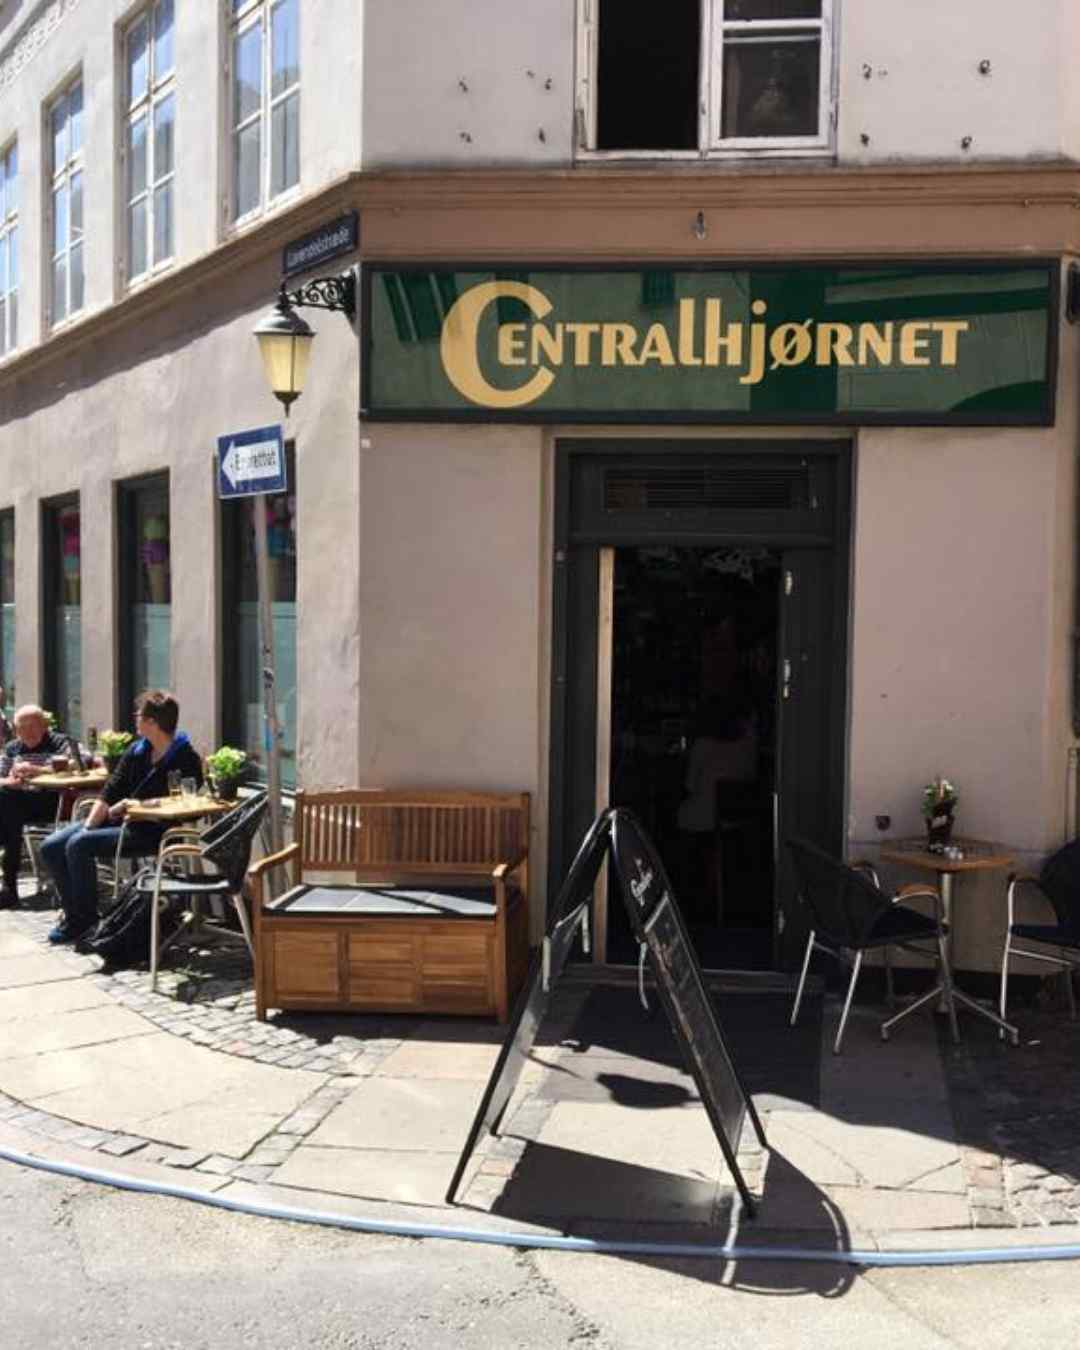 centralhjornet oldest gay bar in the world monuments europe